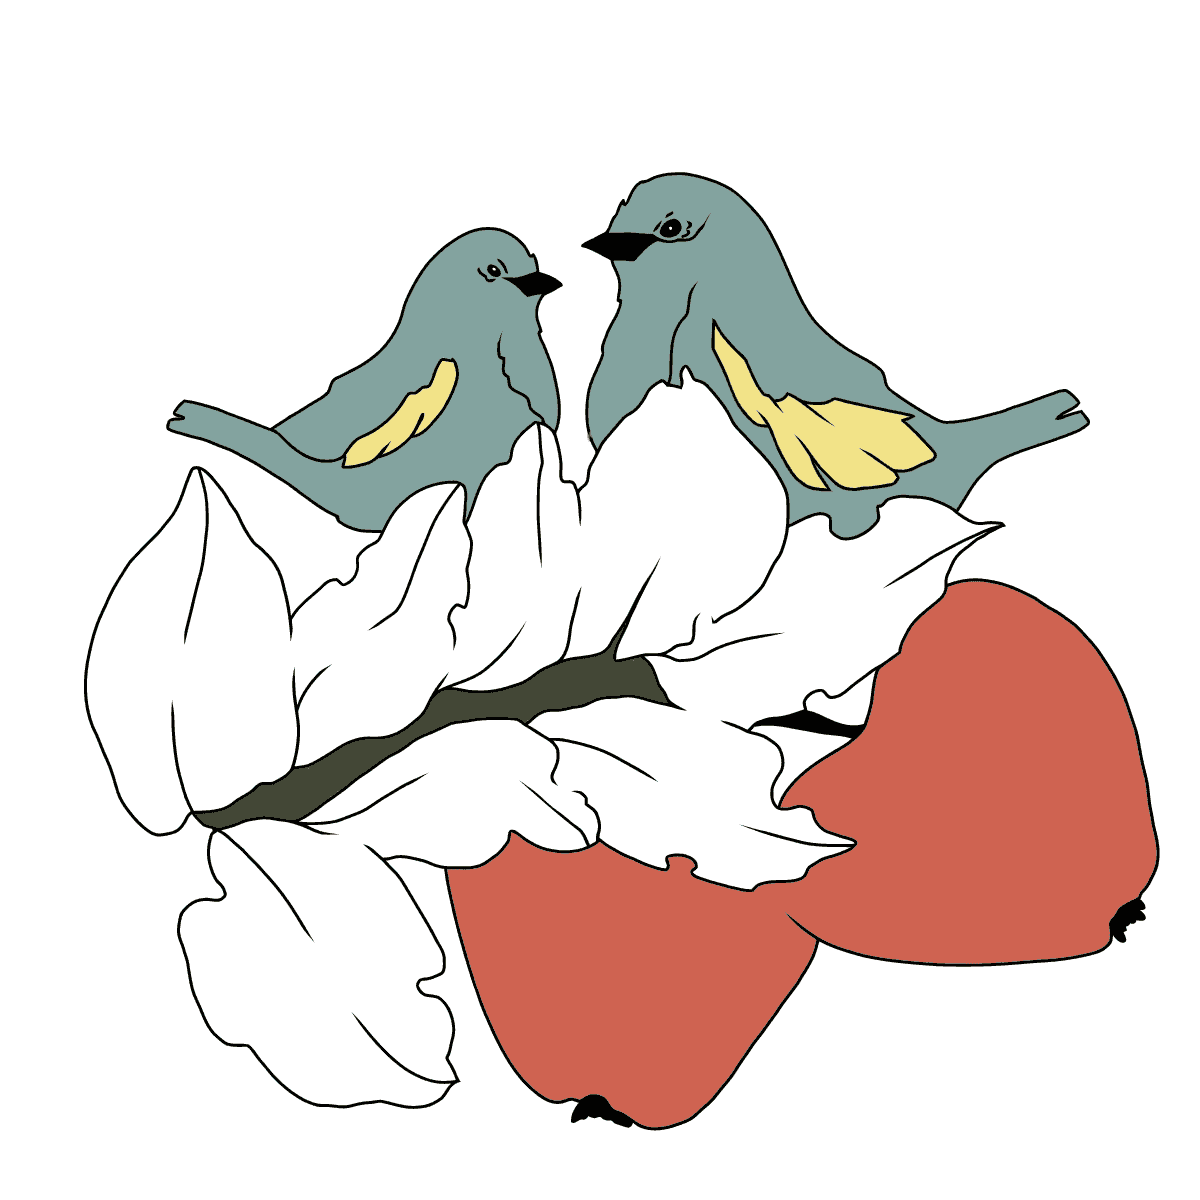 Autumn Coloring Page - Birds on the Branch of an Apple Tree